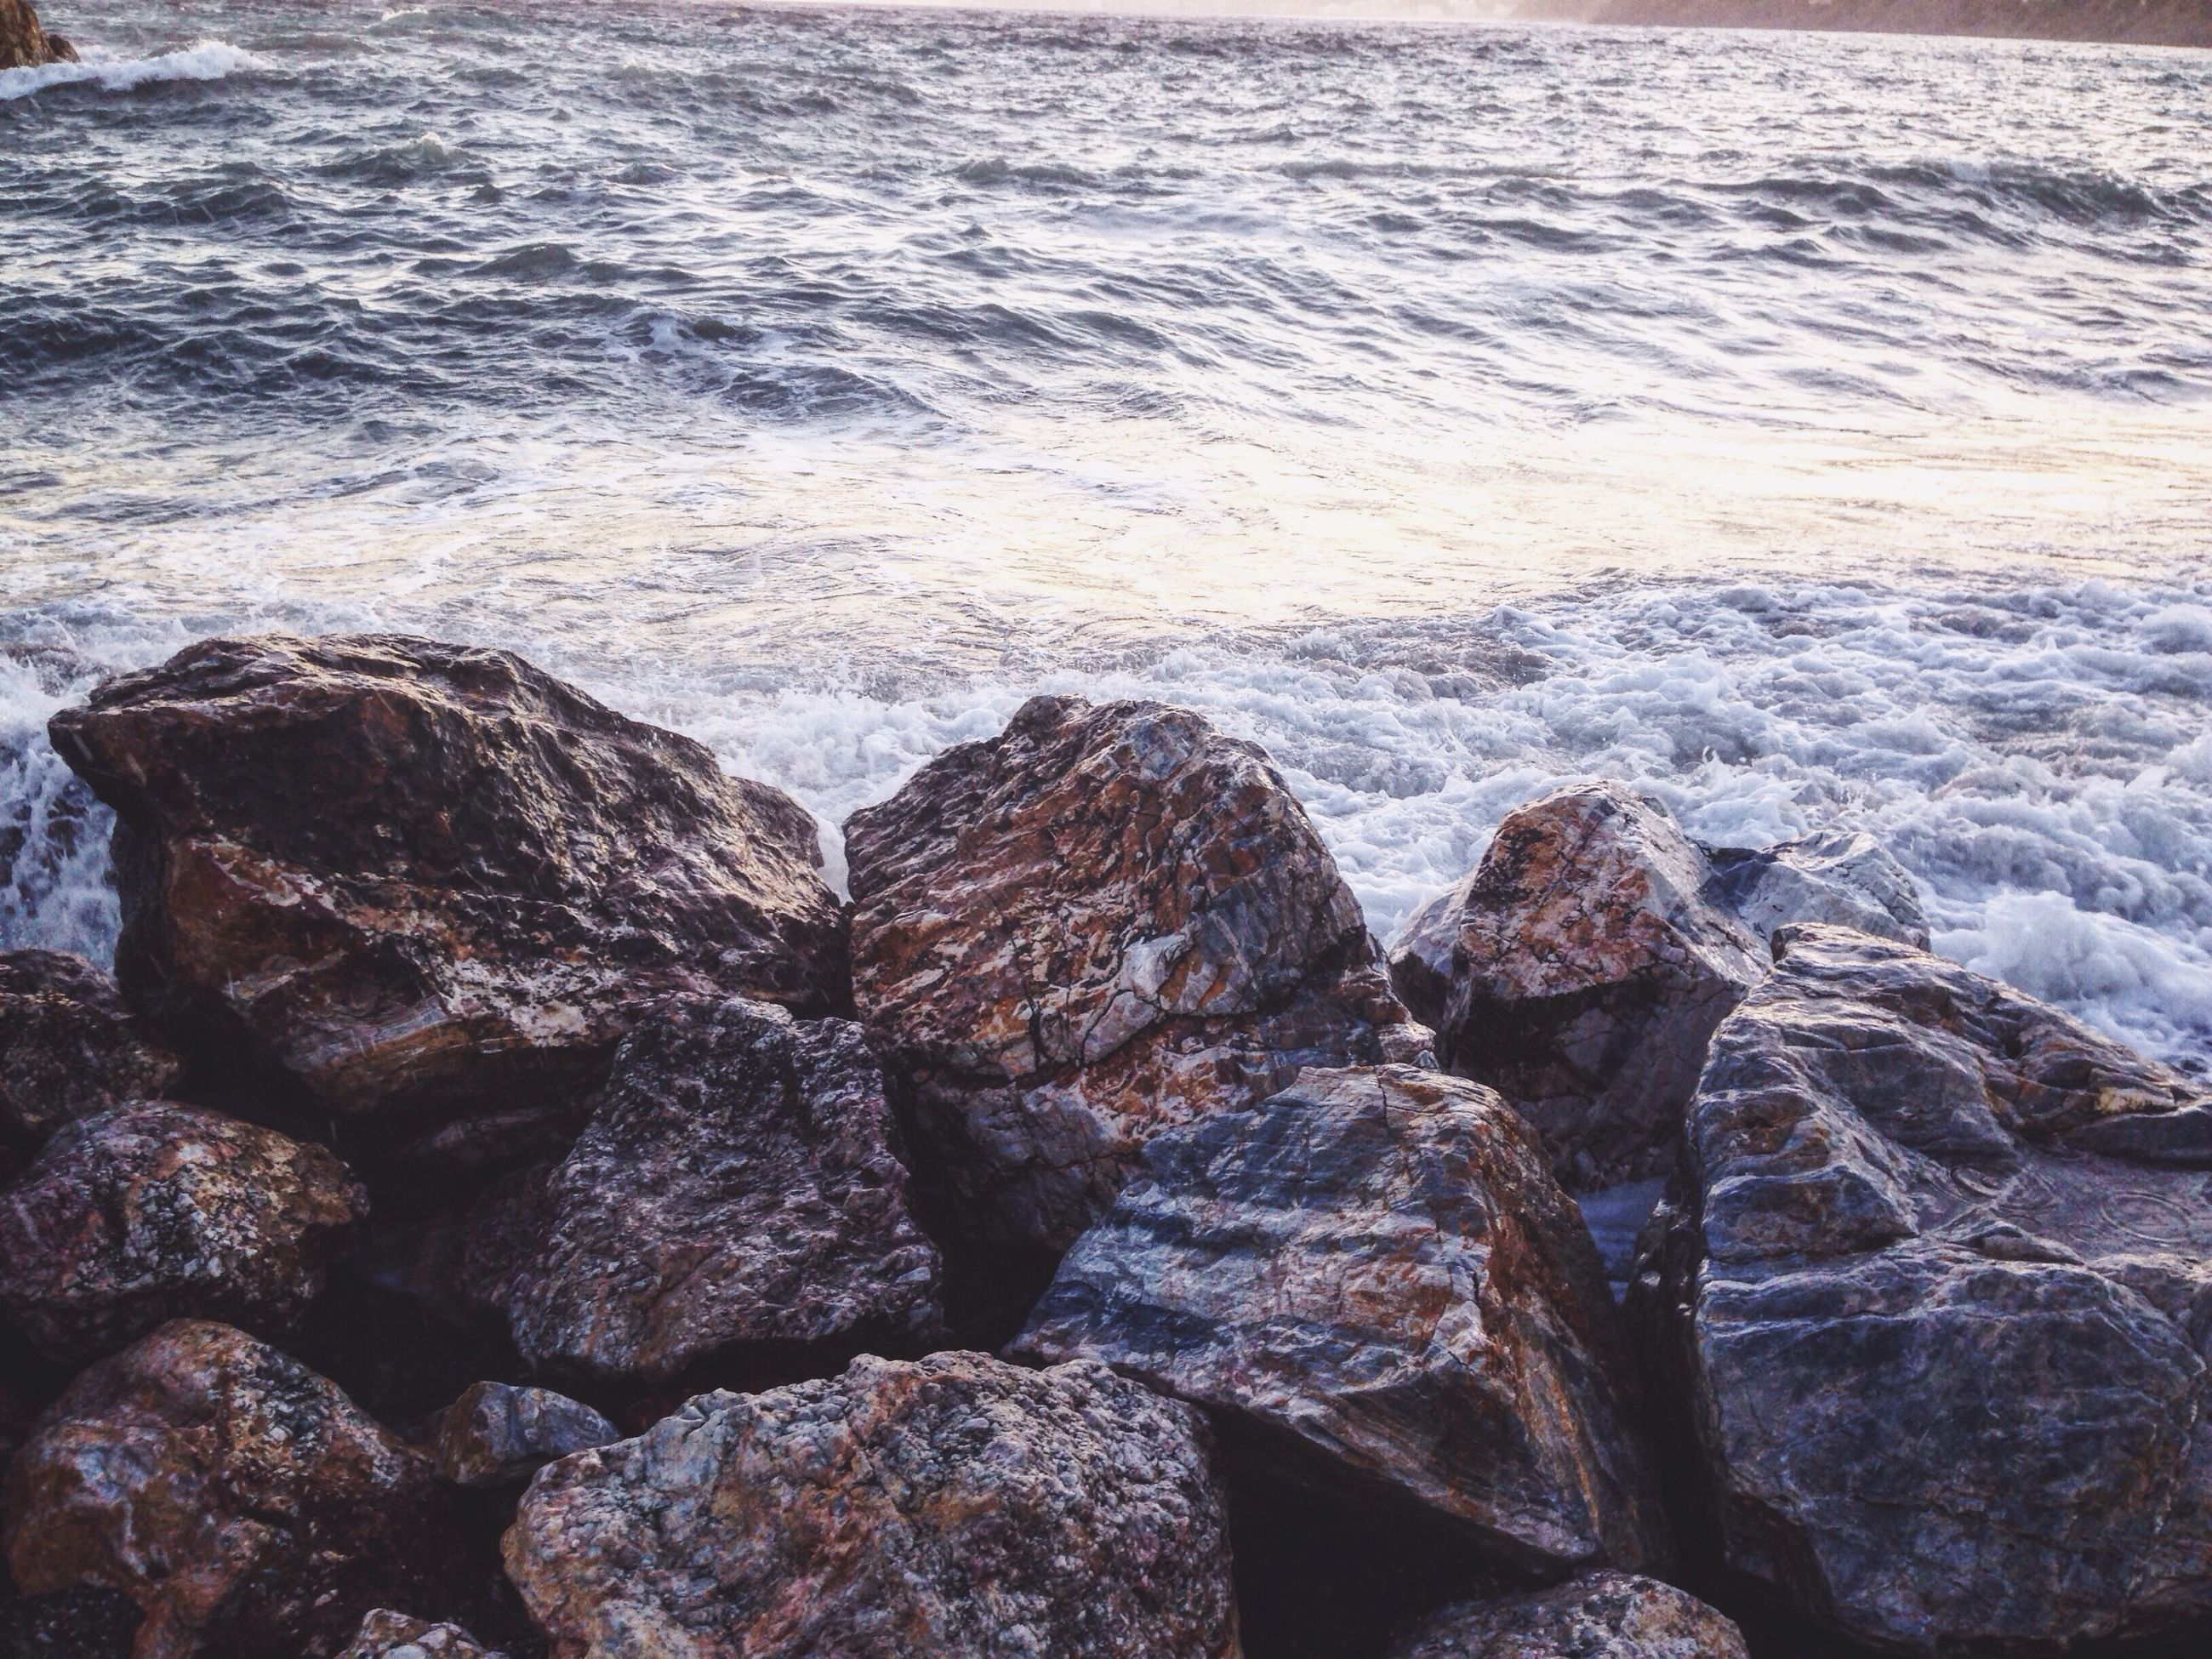 sea, water, rock - object, rocky, beach, shore, nature, wave, rough, rippled, beauty in nature, day, scenics, outdoors, power in nature, tranquil scene, geology, tranquility, rock, non urban scene, rock formation, coastal feature, no people, non-urban scene, rocky coastline, water surface